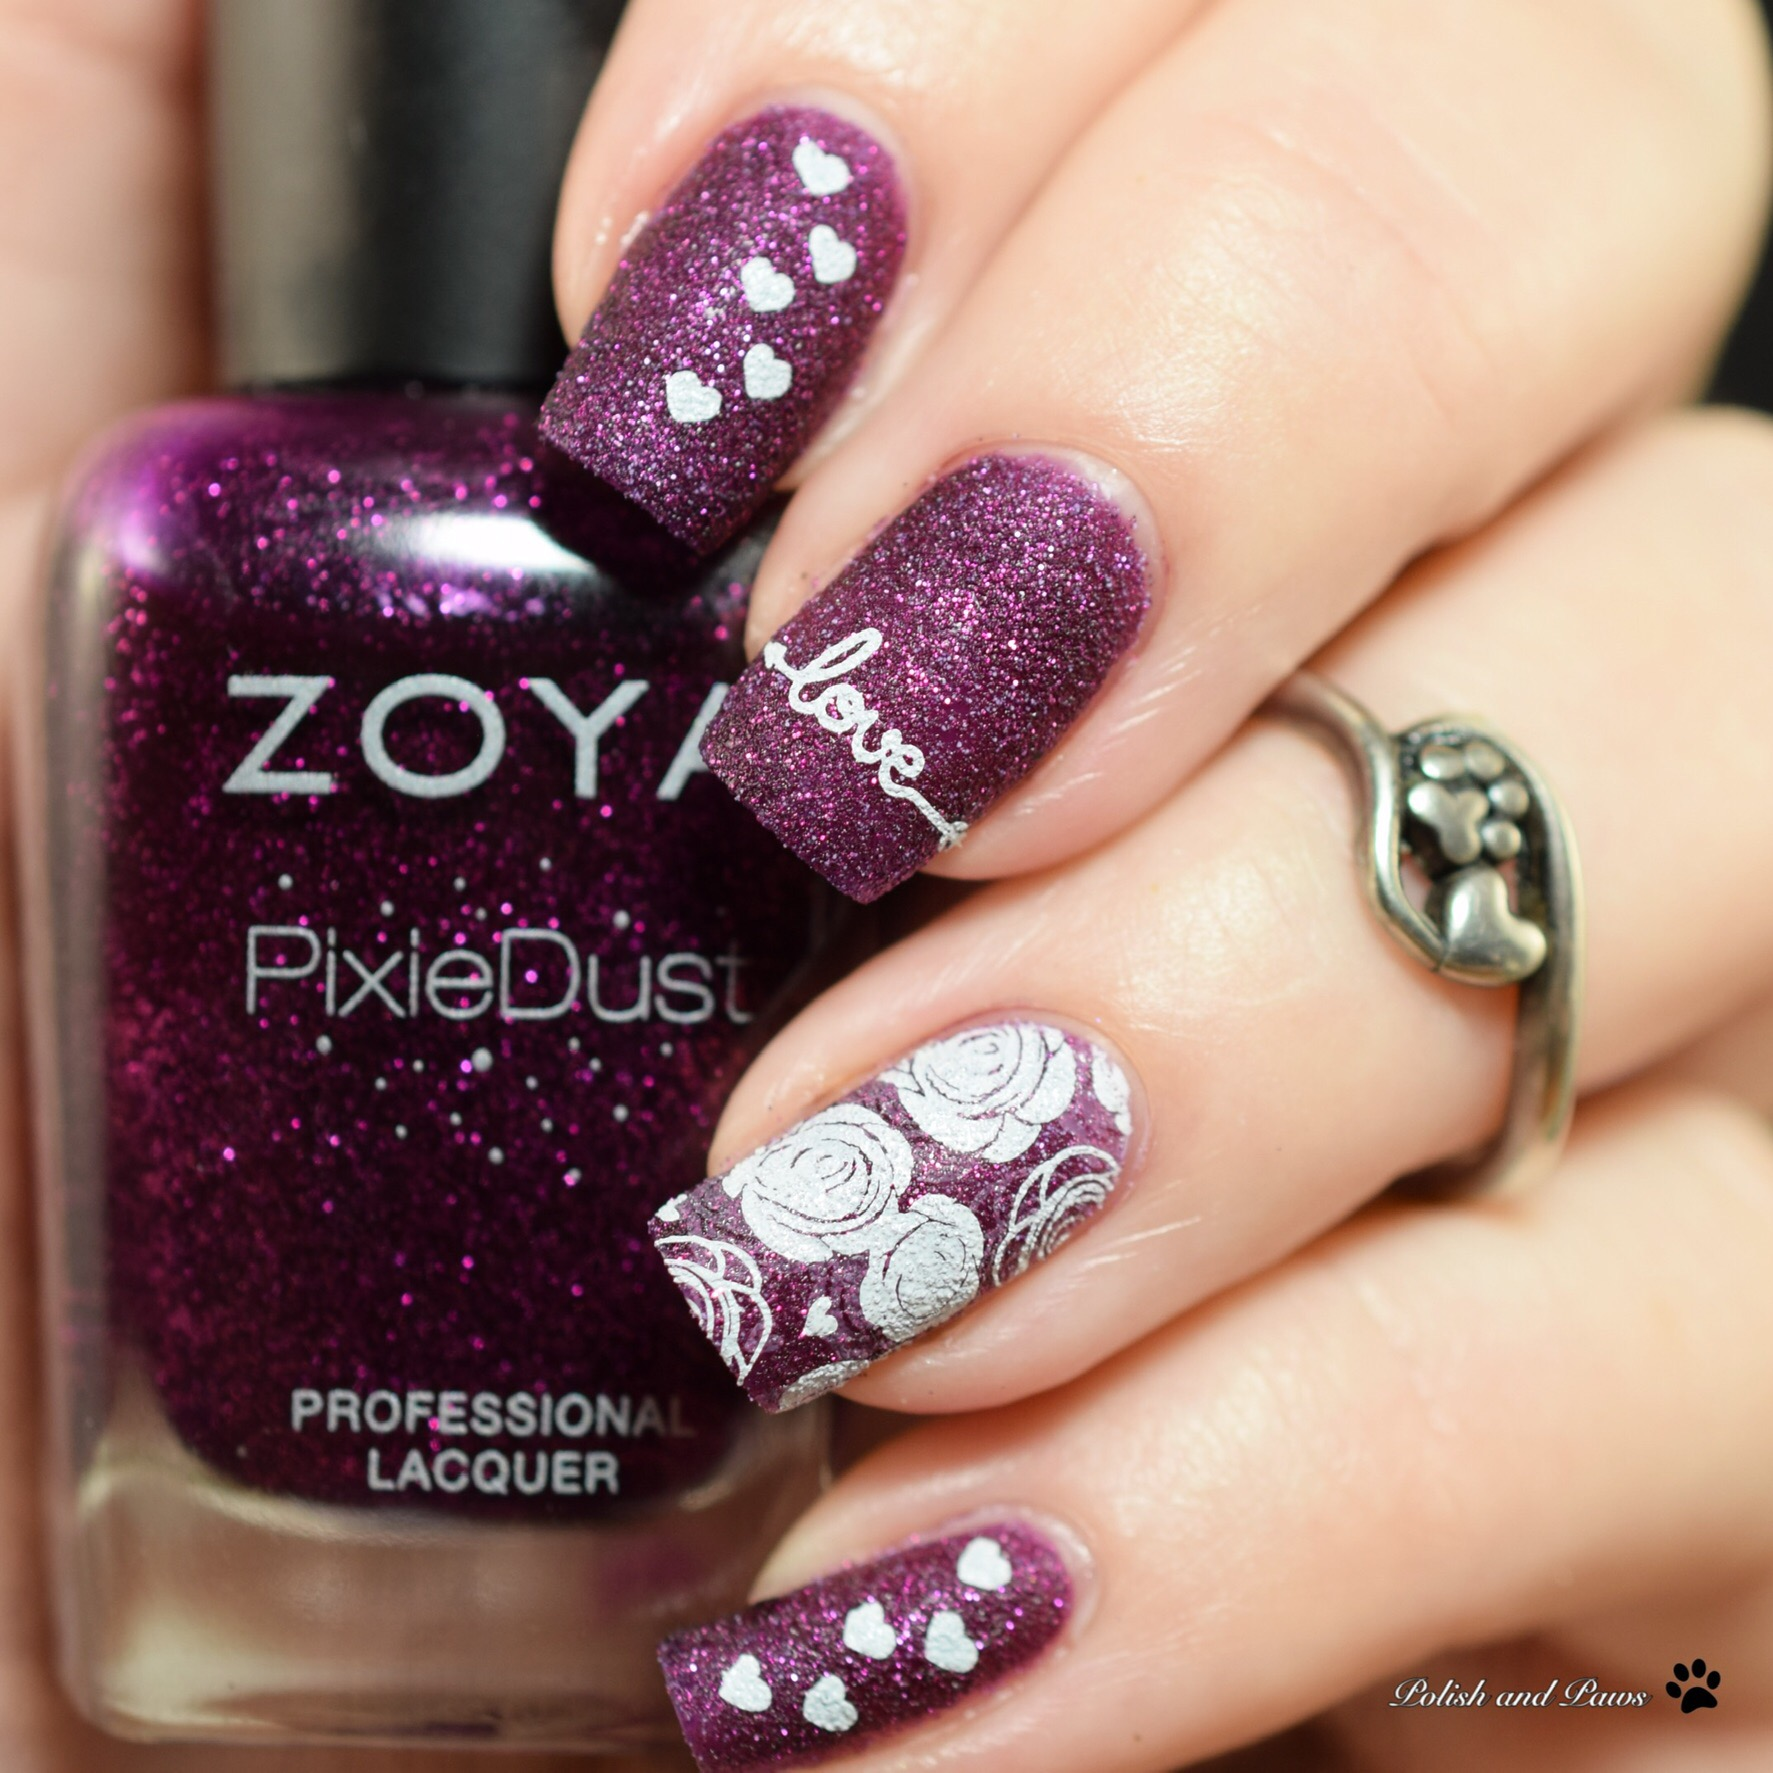 Digit-al Dozen Polish and Paws Textured Valentine's Day Nails